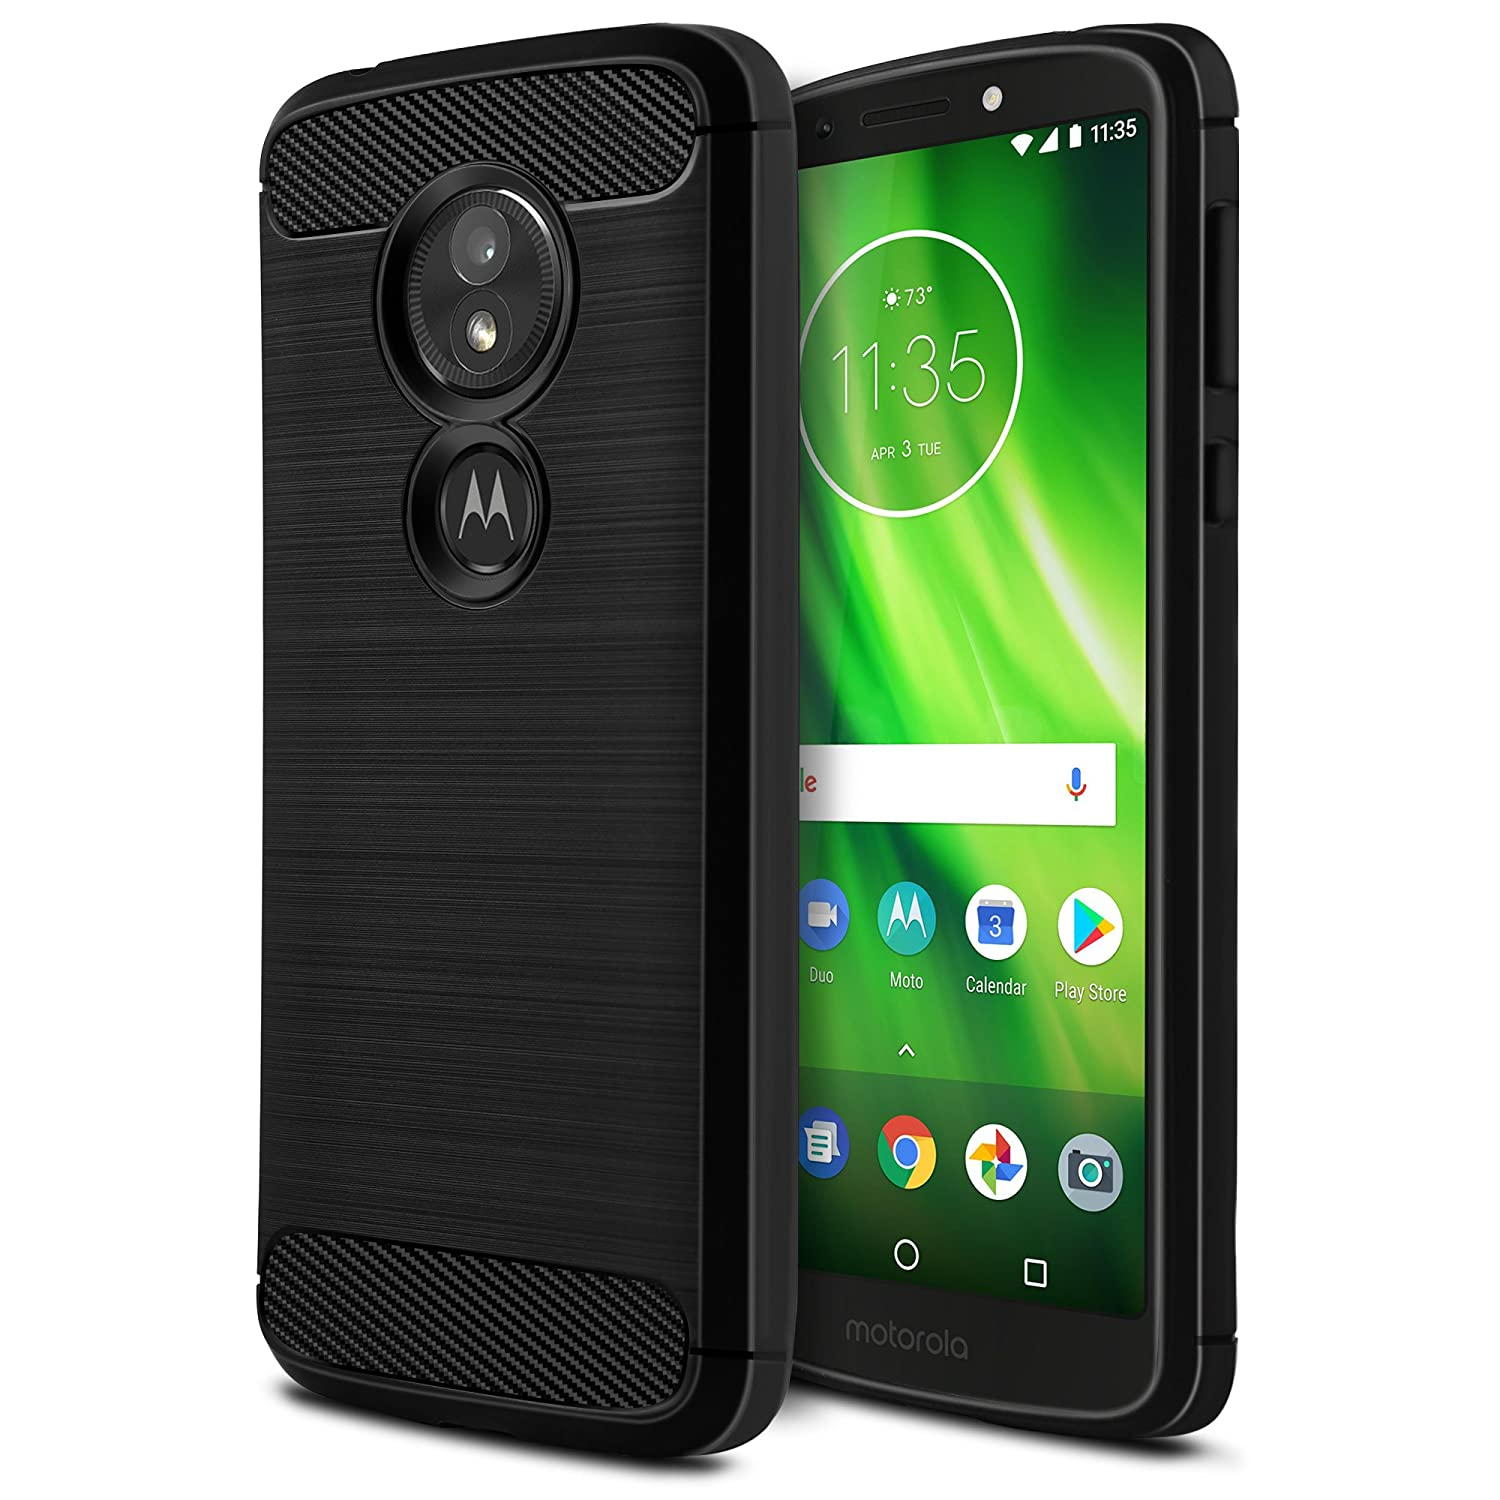 buy popular 37f16 3294c Moto G6 Play Case [Not Moto G6], OEAGO [Shock Resistant] Flexible Soft TPU  Brushed Anti-Fingerprint Protective Cover and Carbon Fiber Design for ...